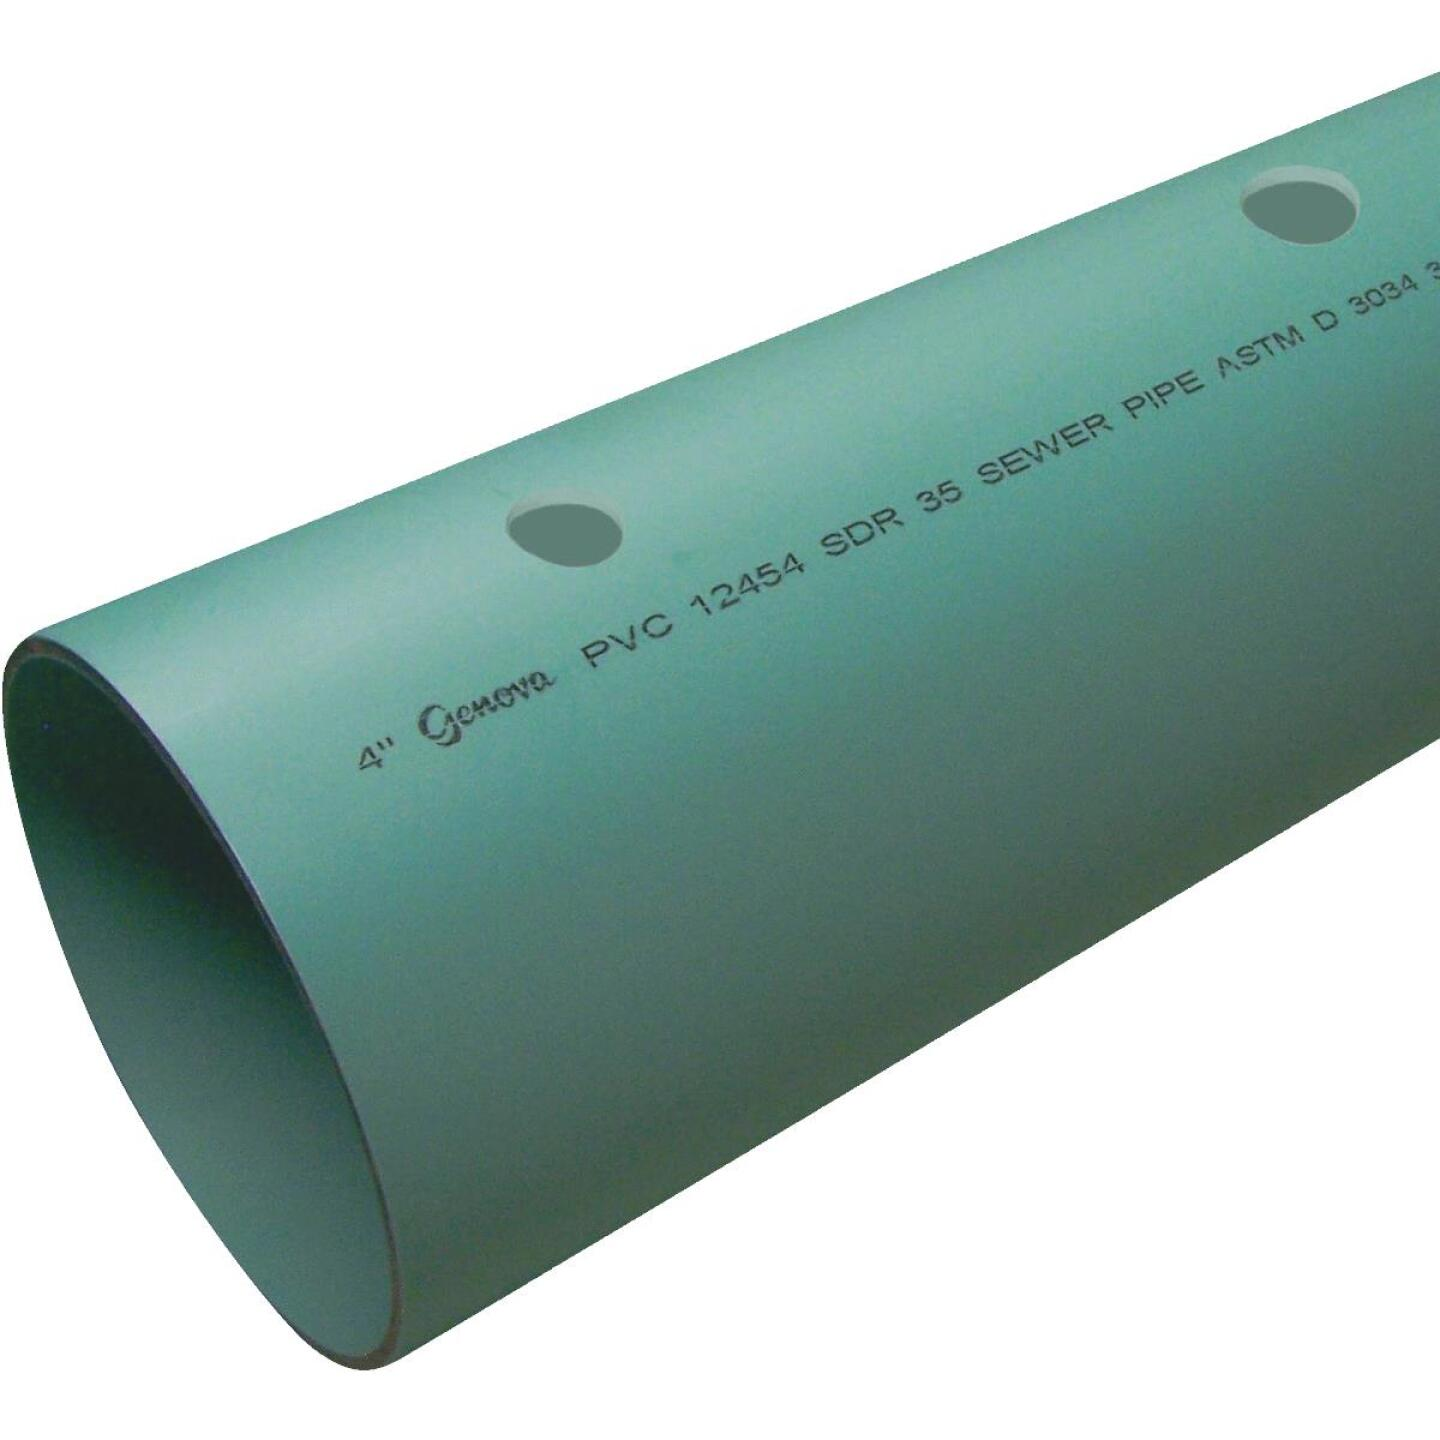 Charlotte Pipe 4 In. x 10 Ft. Perforated SDR35 PVC Drain & Sewer Pipe, Belled End Image 1